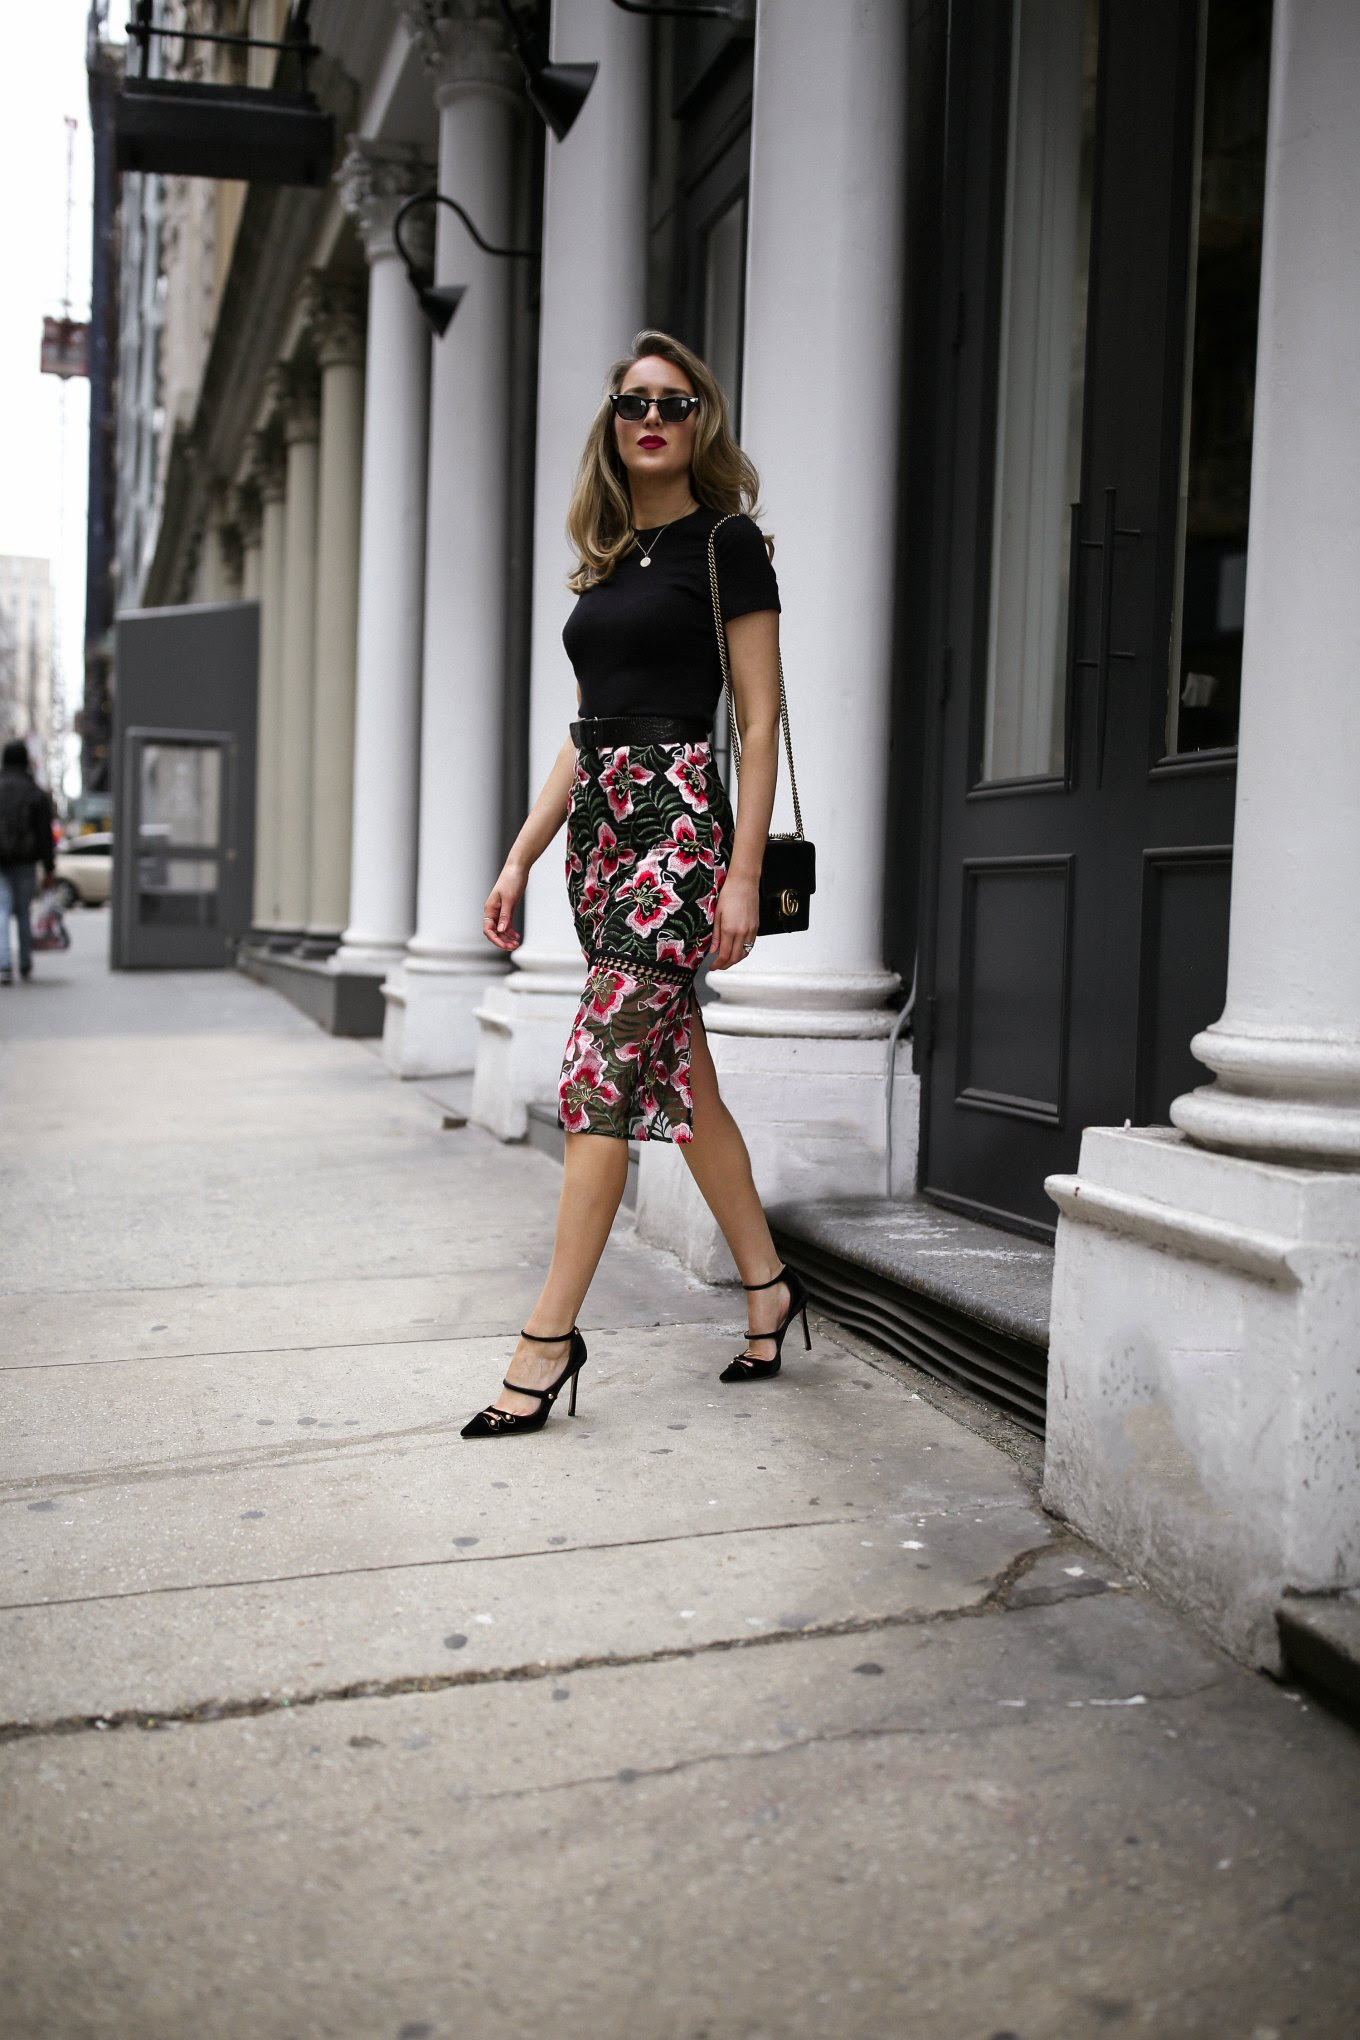 Mary orton wears a dark floral pencil skirt, black tee shirt, gucci wallet on chain, retro sunglasses and jimmy choo mary jane pumps